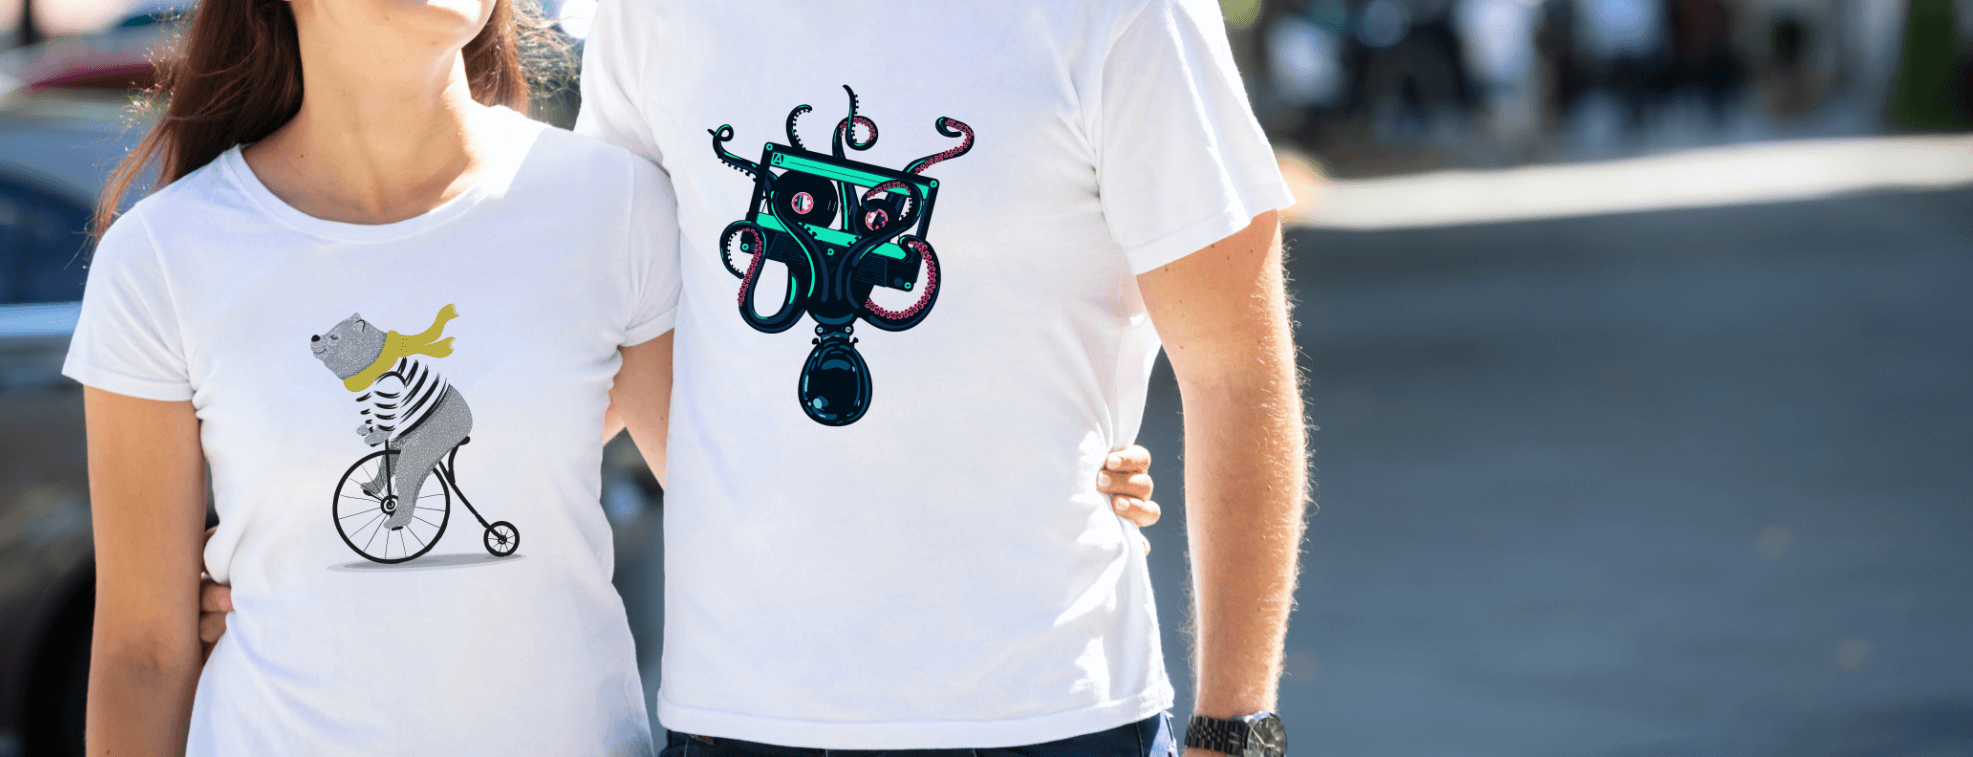 T-shirts design ideas with fun illustrations for women and men